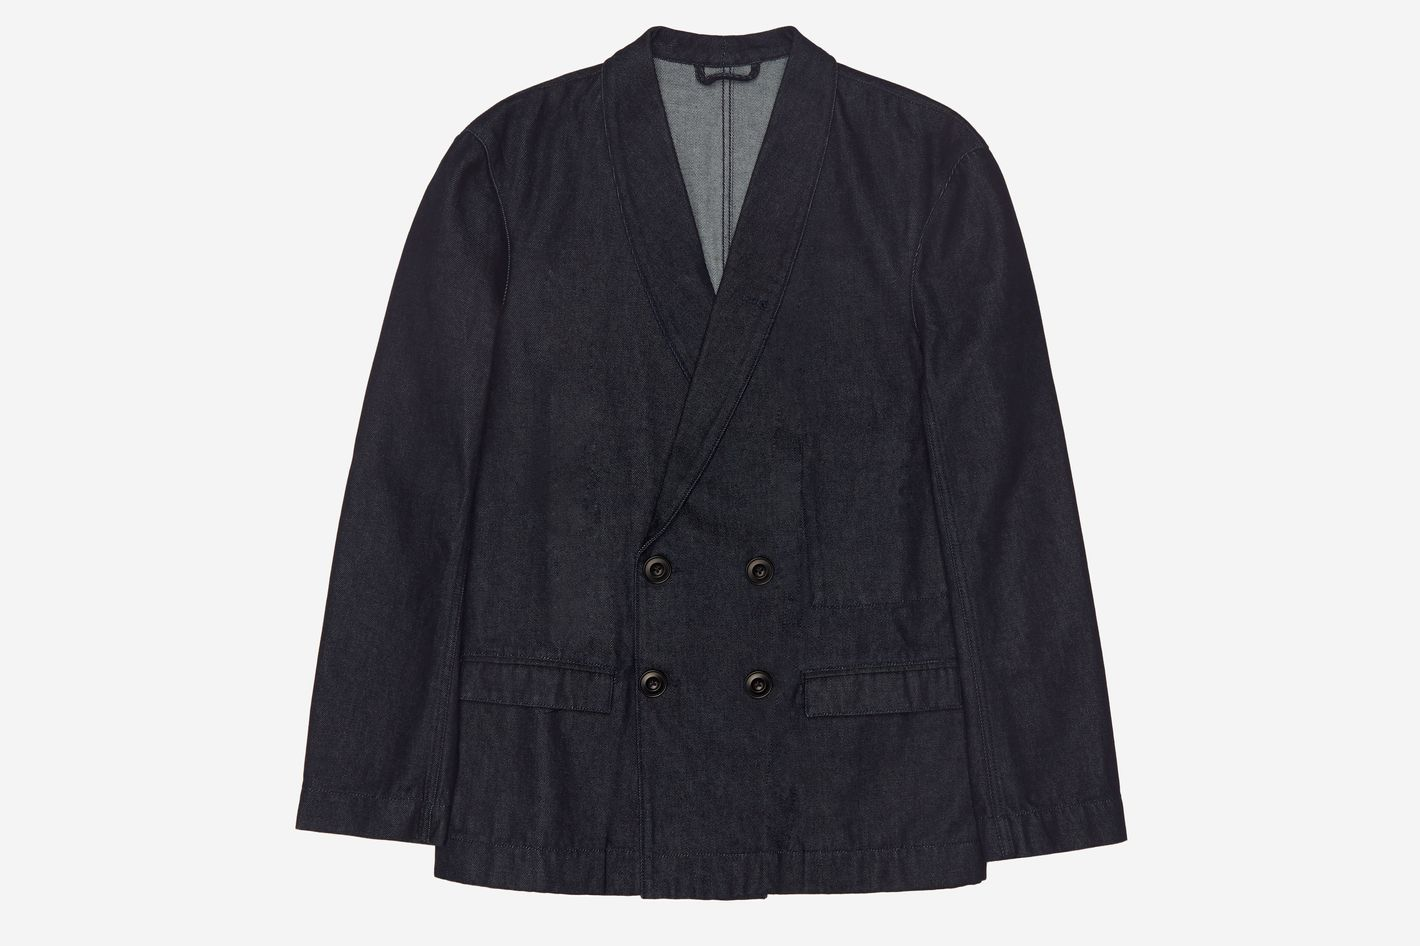 Lemaire SSENSE Exclusive Navy Denim Double-Breasted Jacket